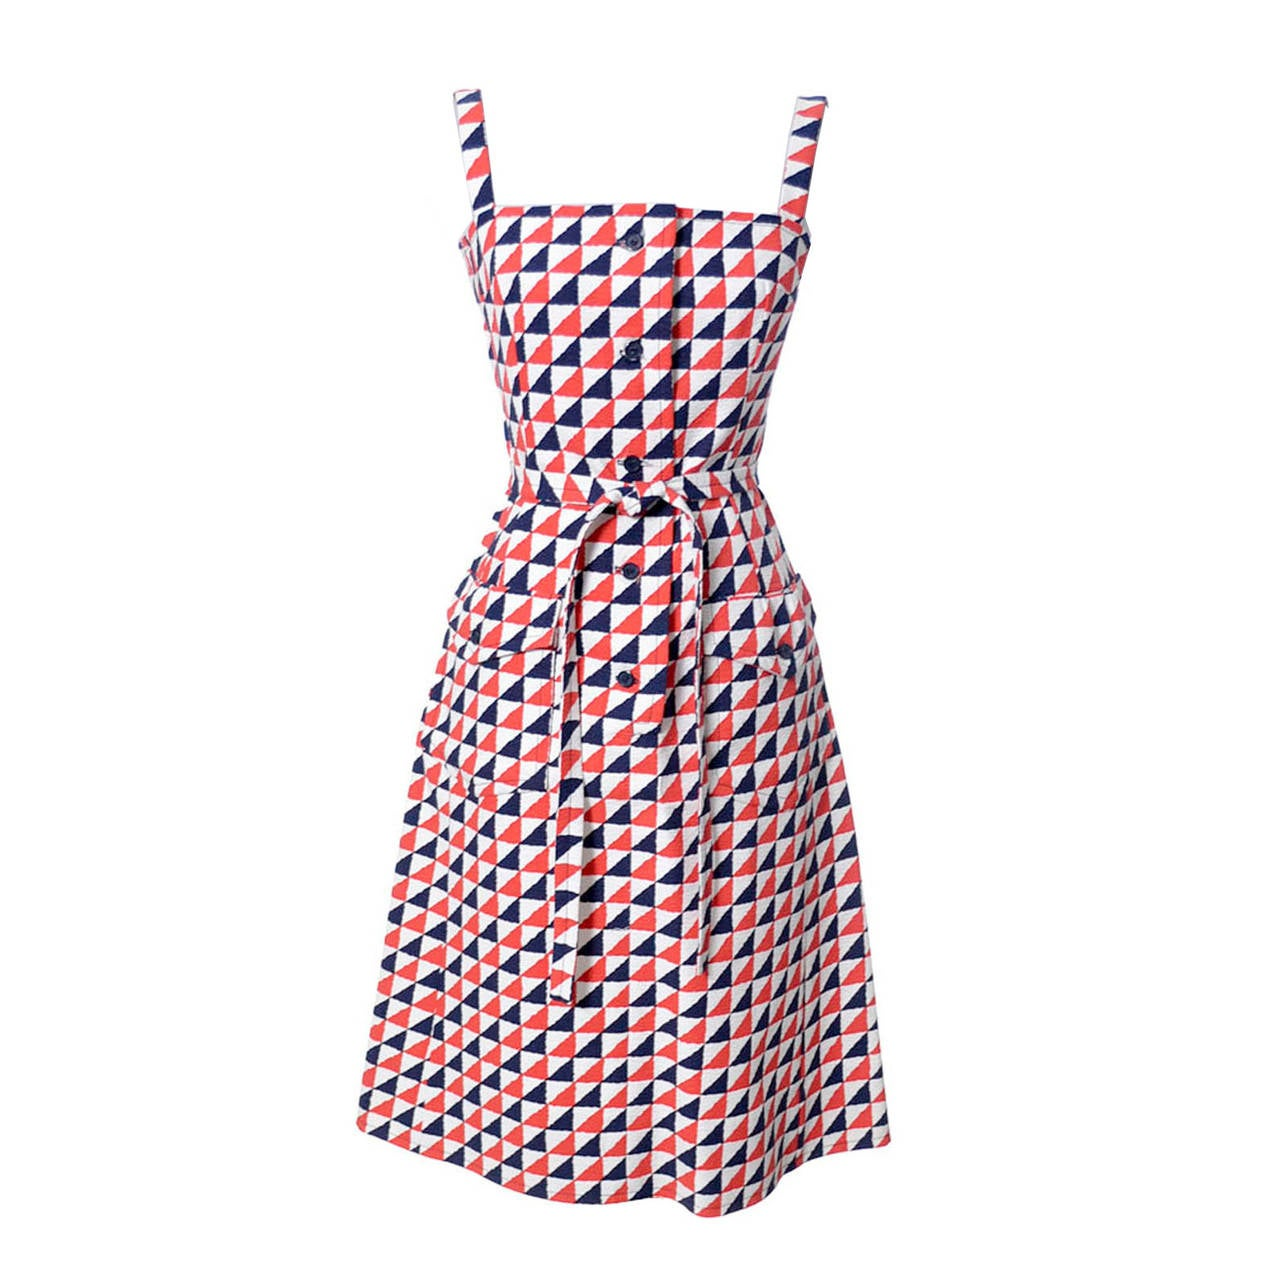 Givenchy Nouvelle Boutique Vintage Dress in Red White & Blue Structured Cotton  For Sale